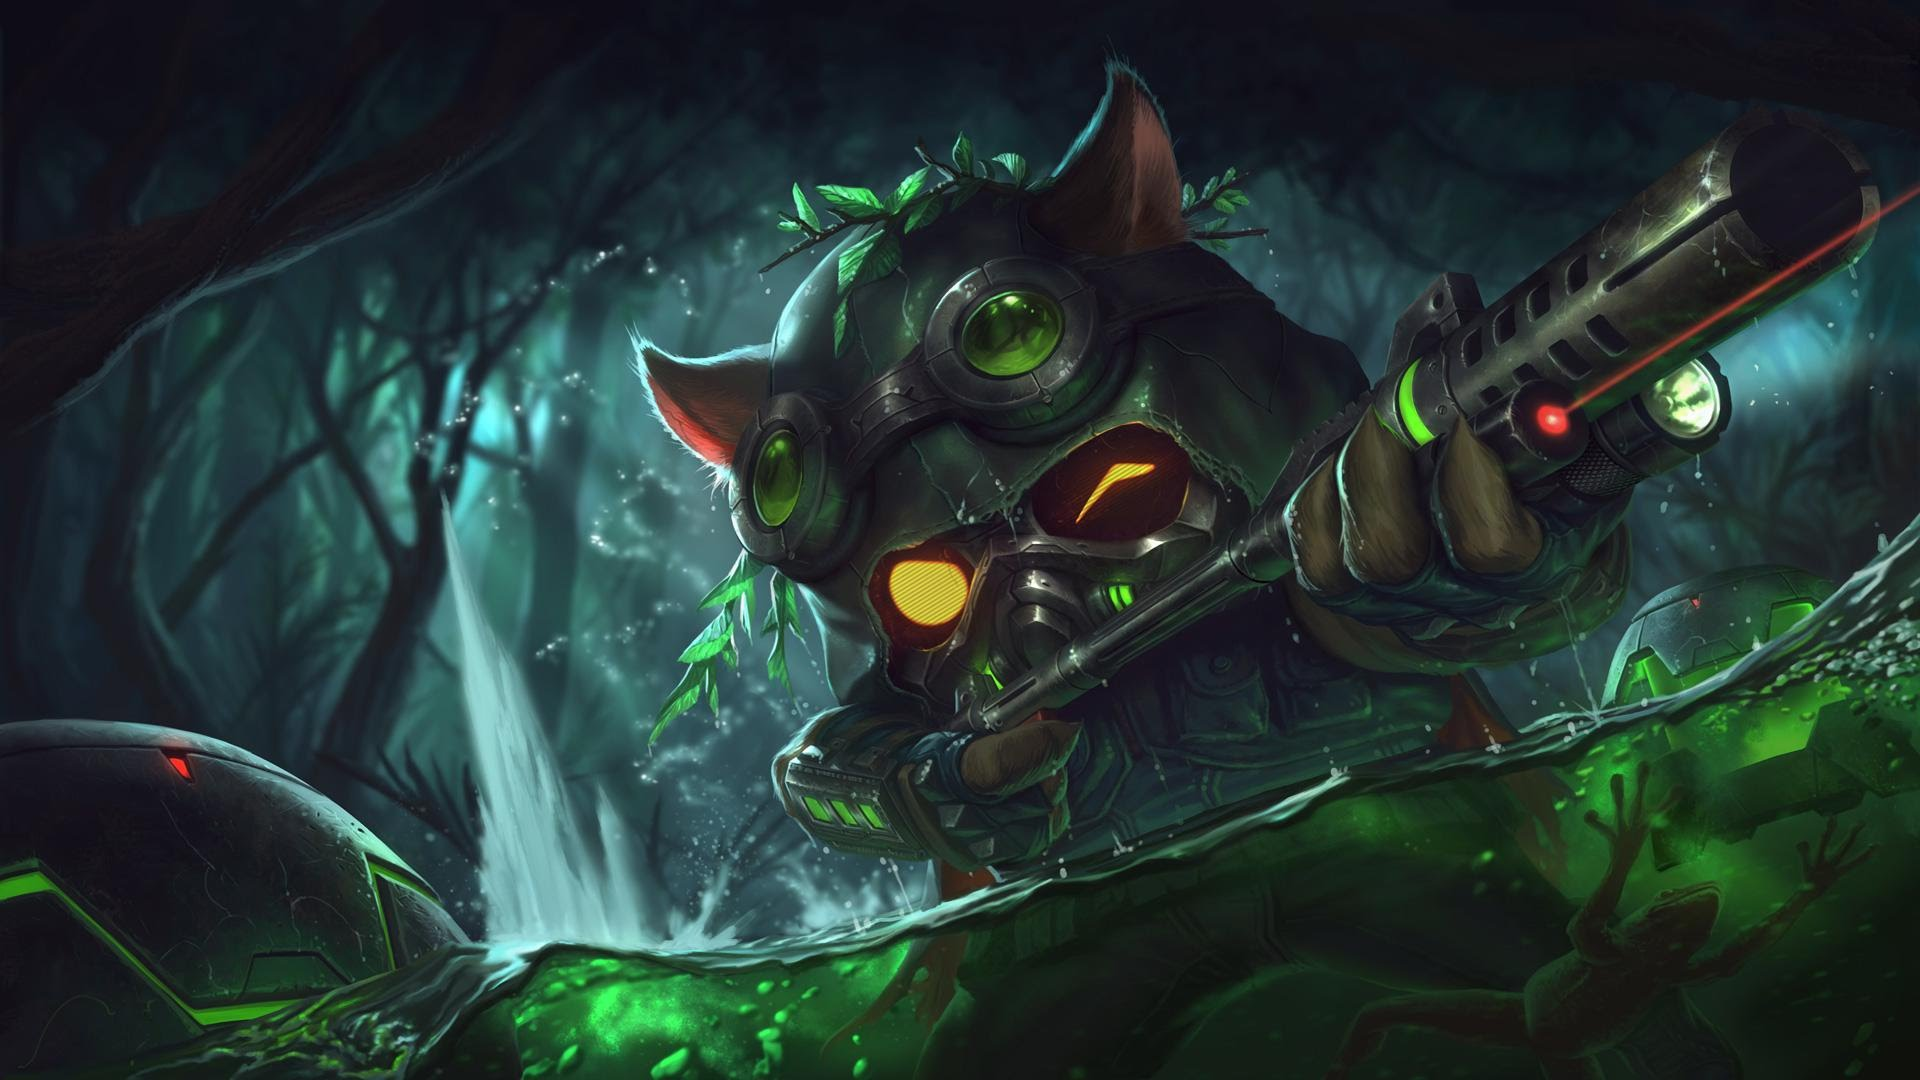 teemo wallpaper - photo #1